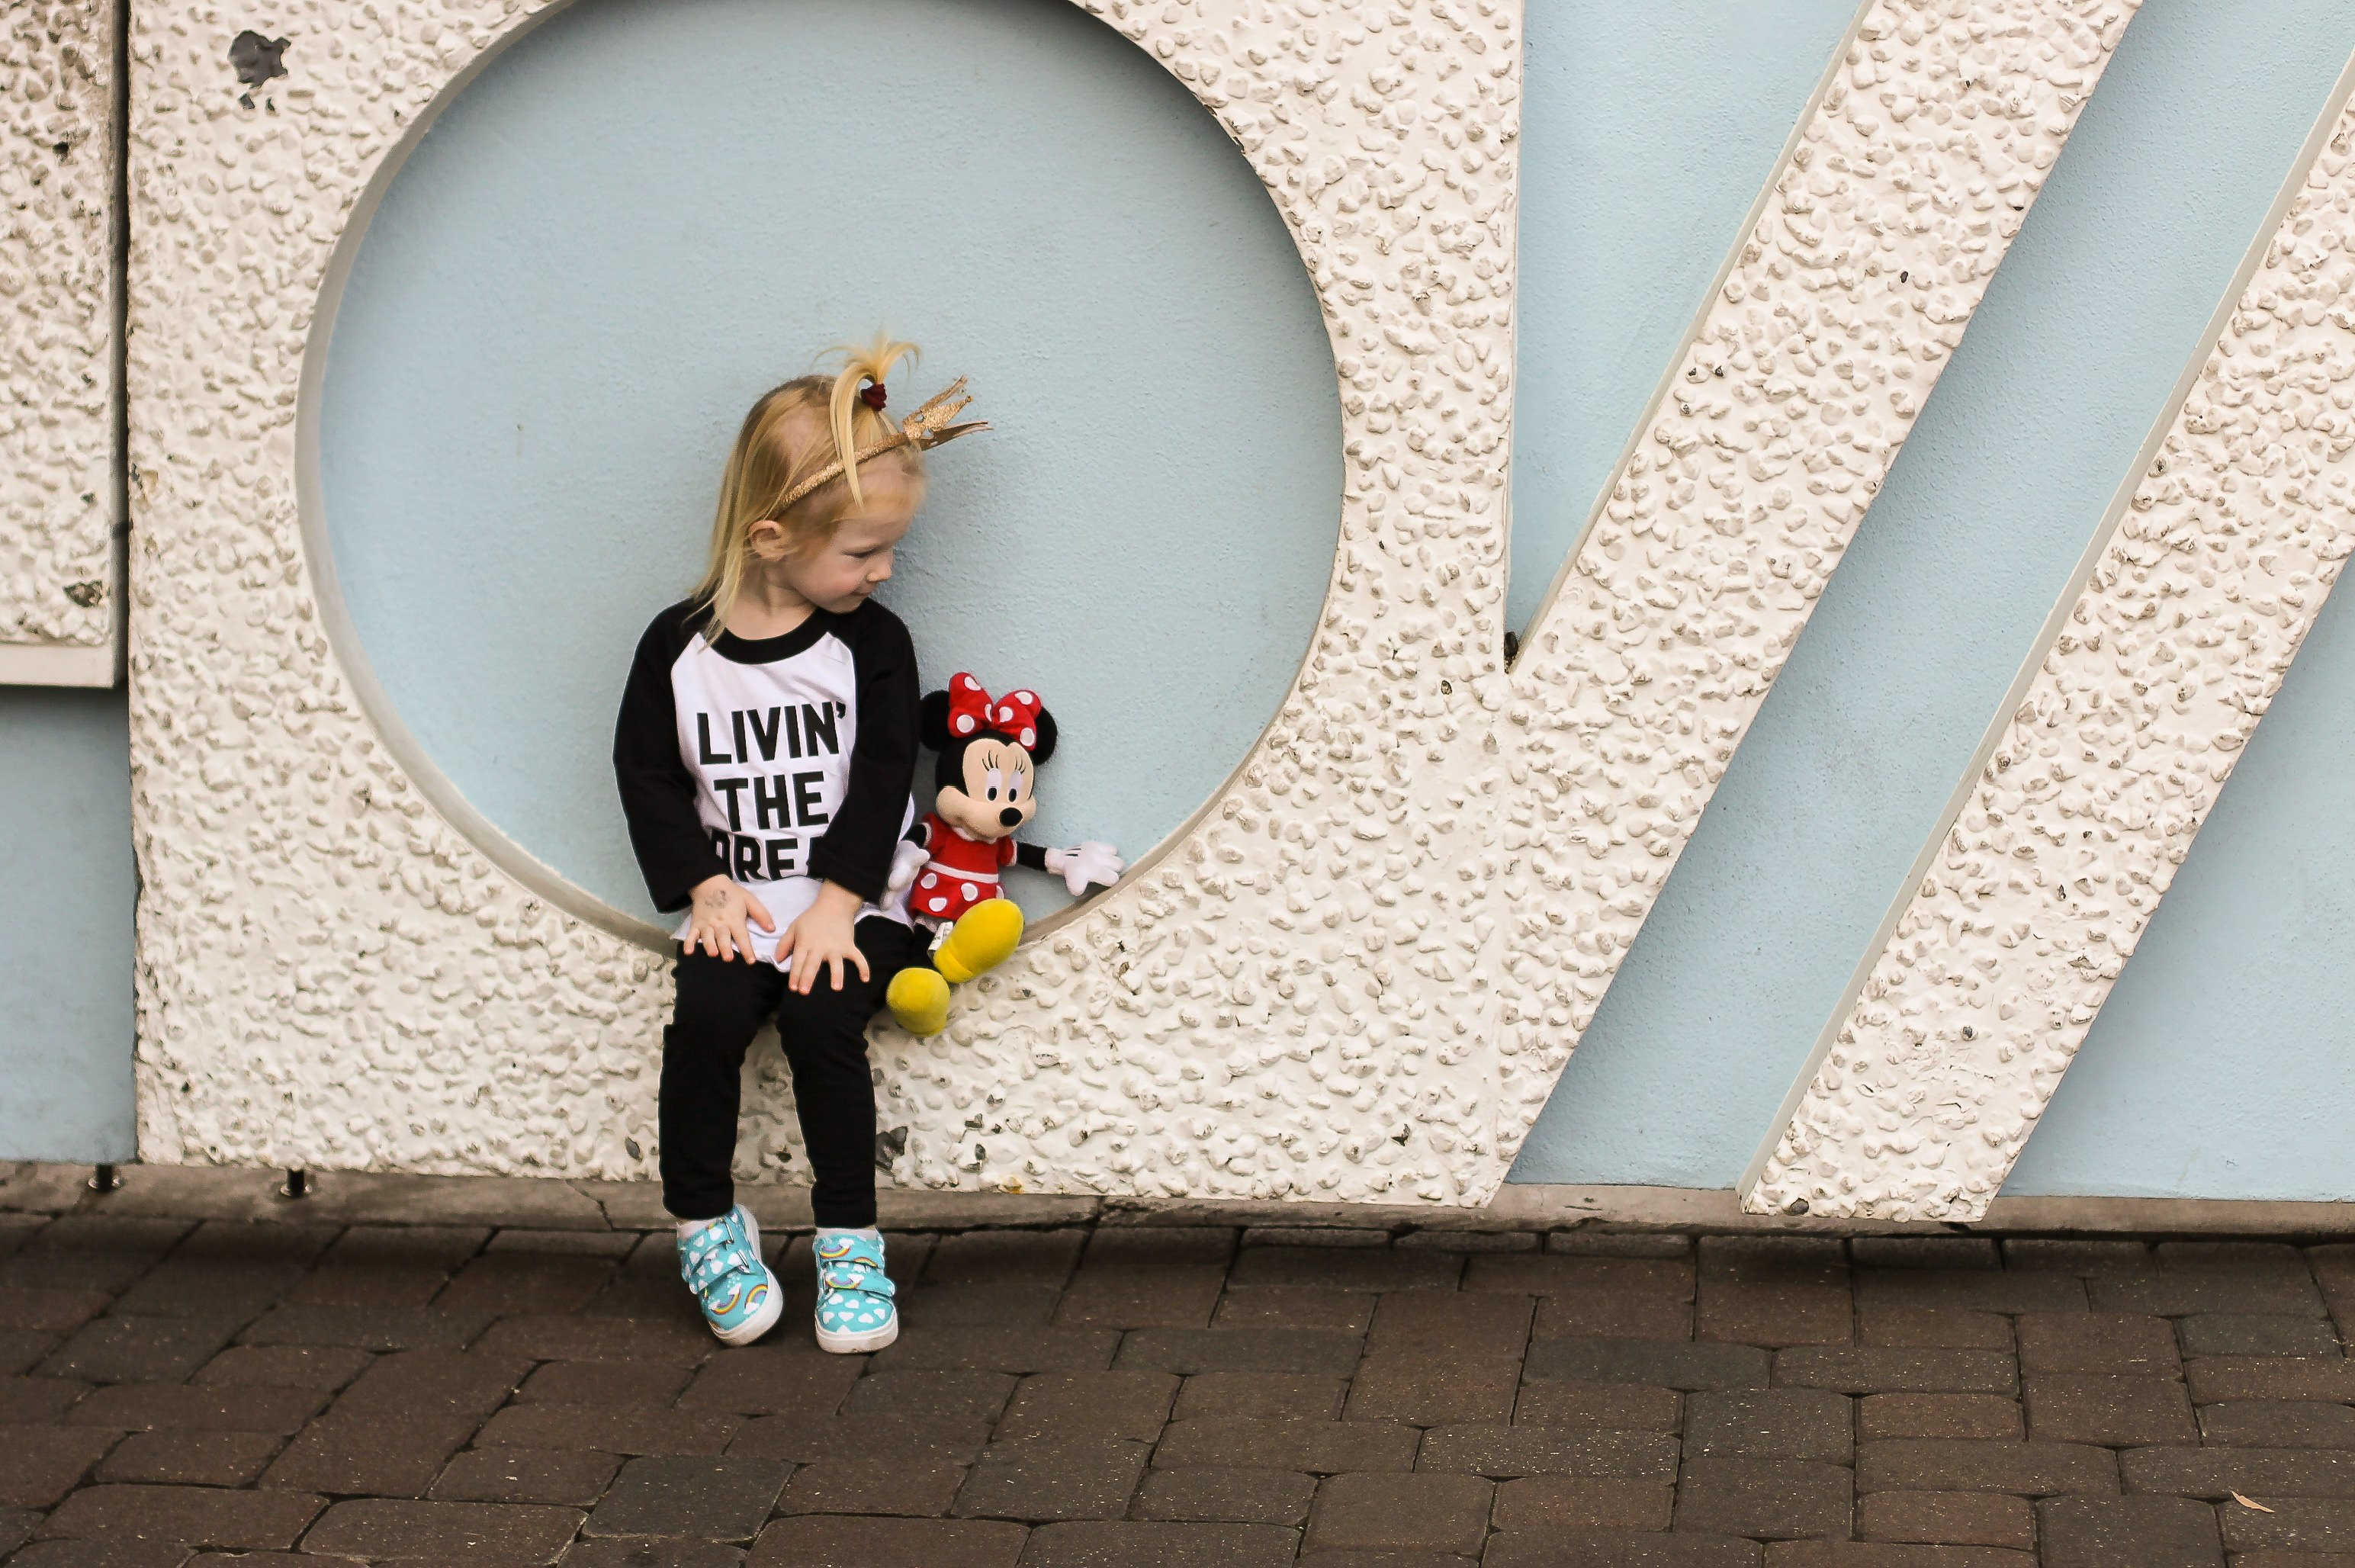 Visiting Disneyland or Disney World in the near future? We are sharing 15 Acts of Kindness that you can do as a family while visiting the parks (Walt would approve)!